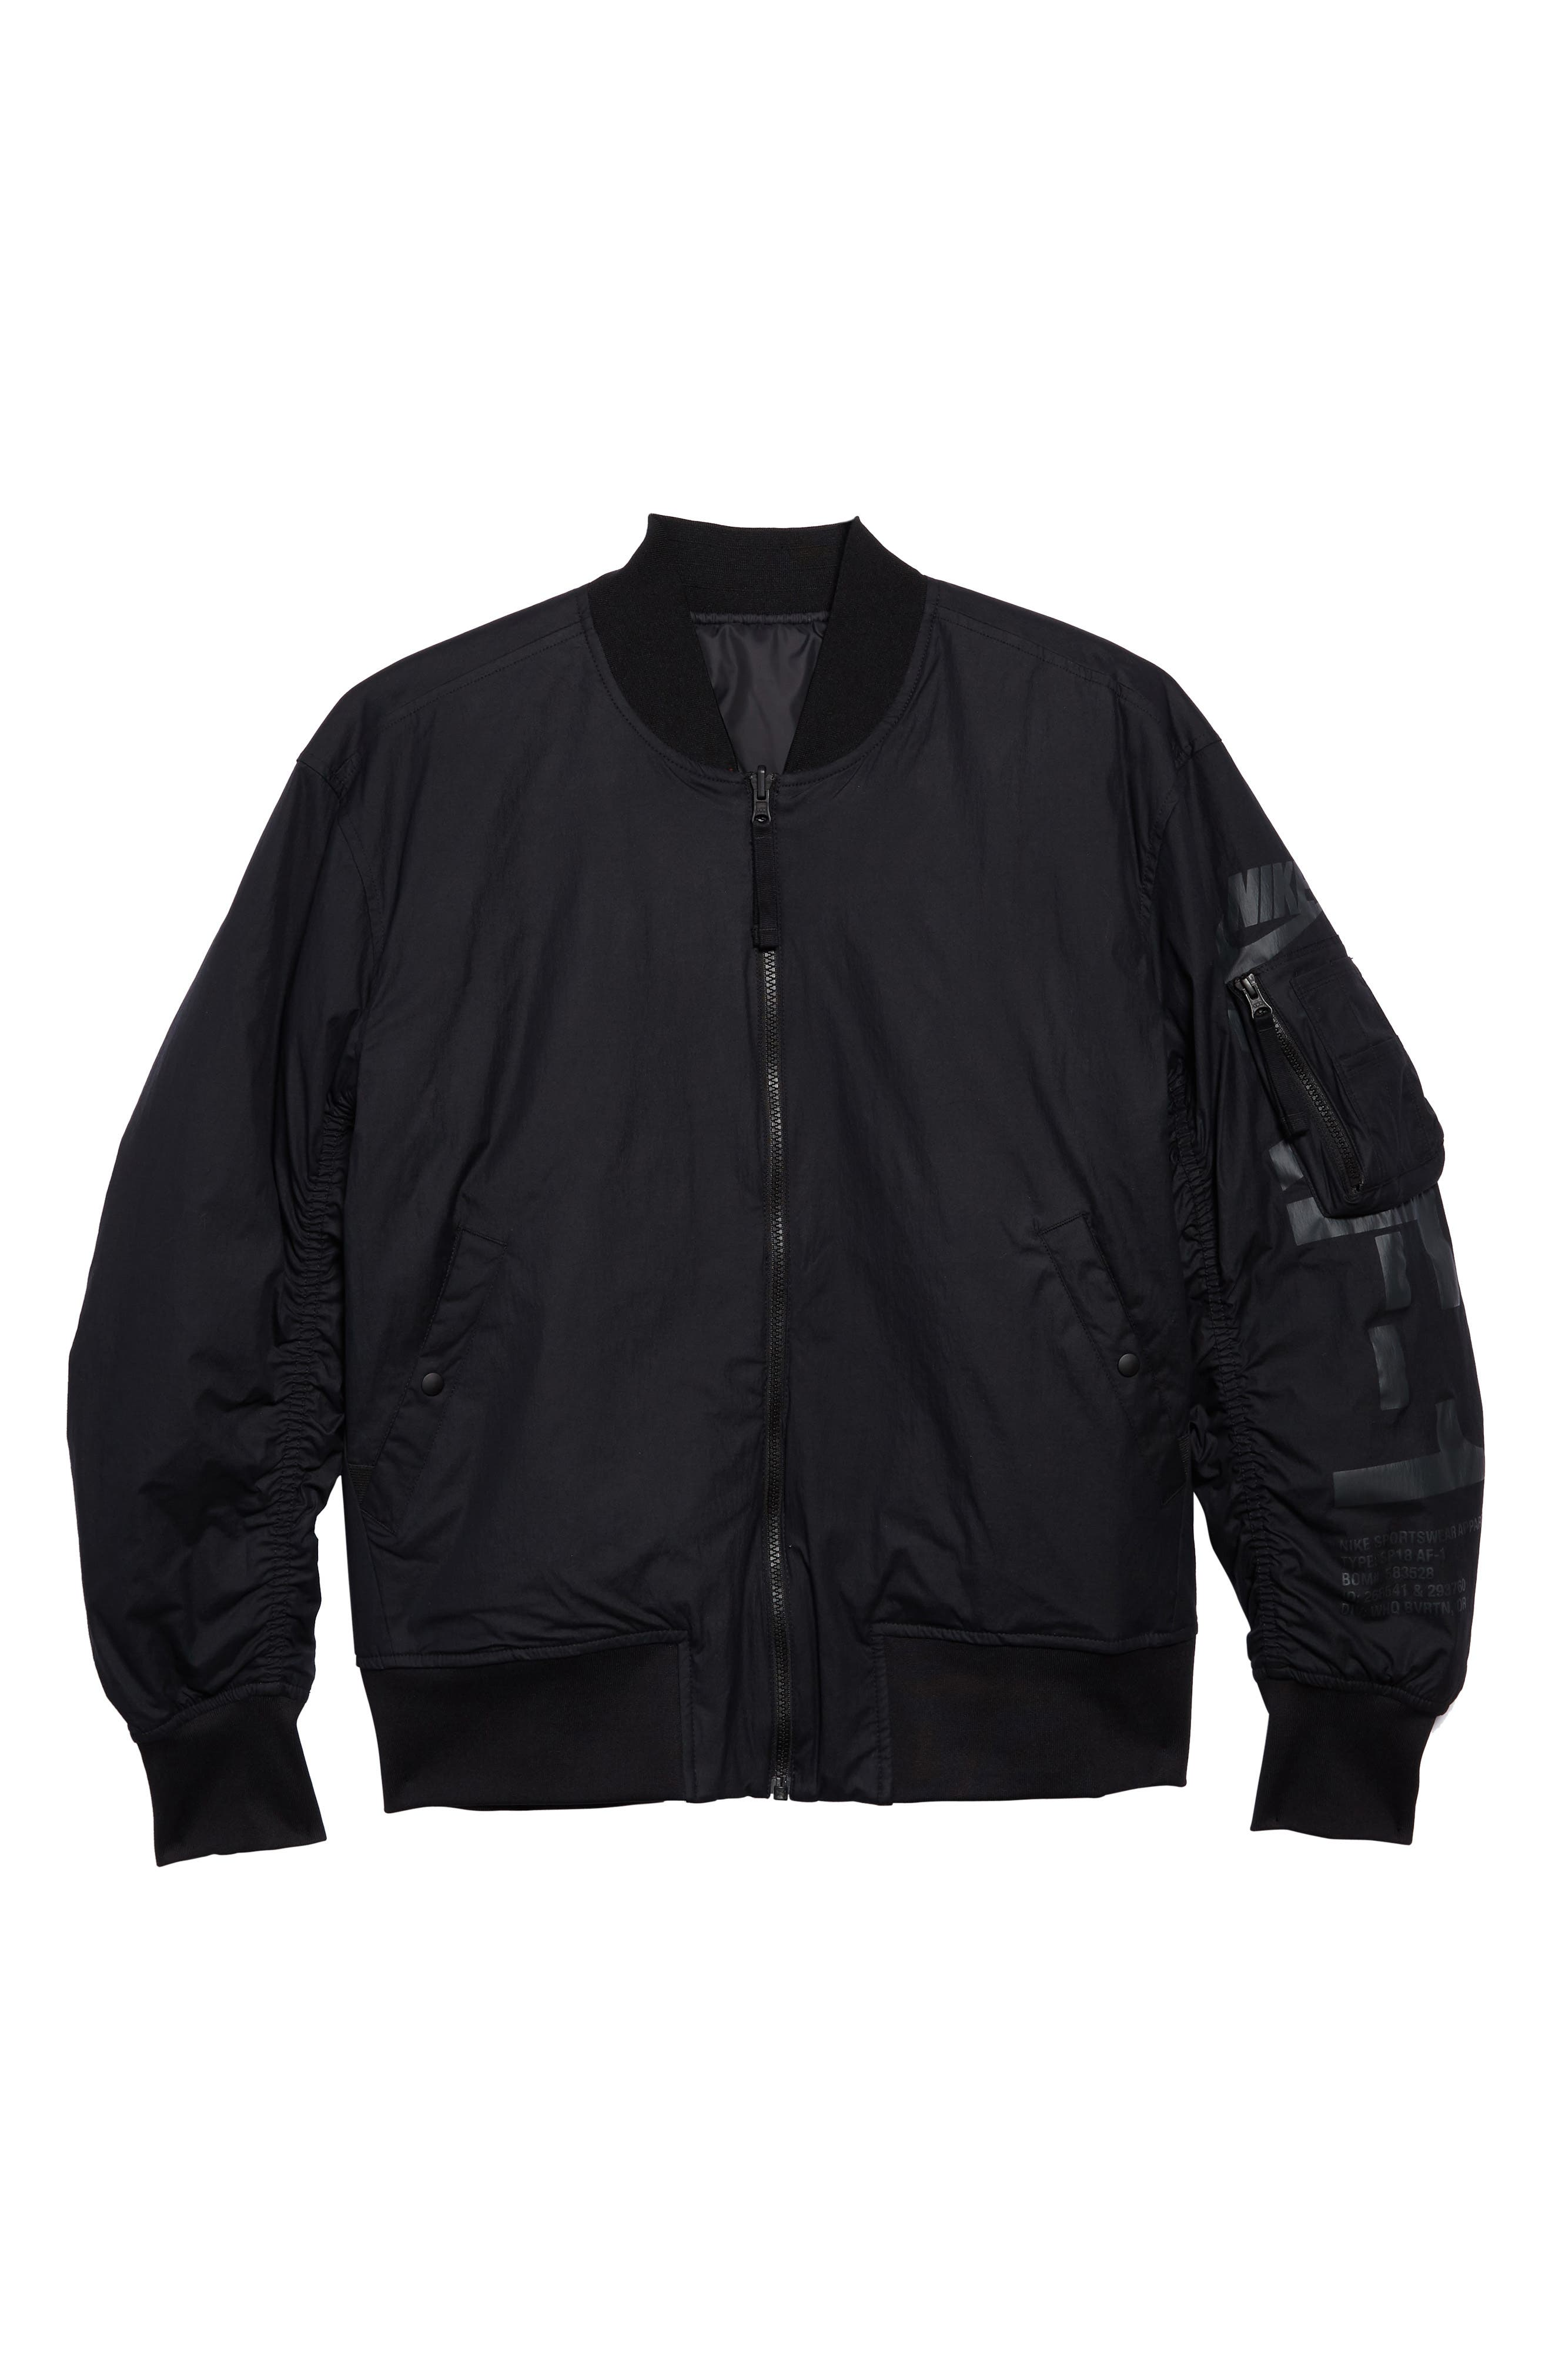 NSW Air Force 1 Jacket,                             Alternate thumbnail 6, color,                             010